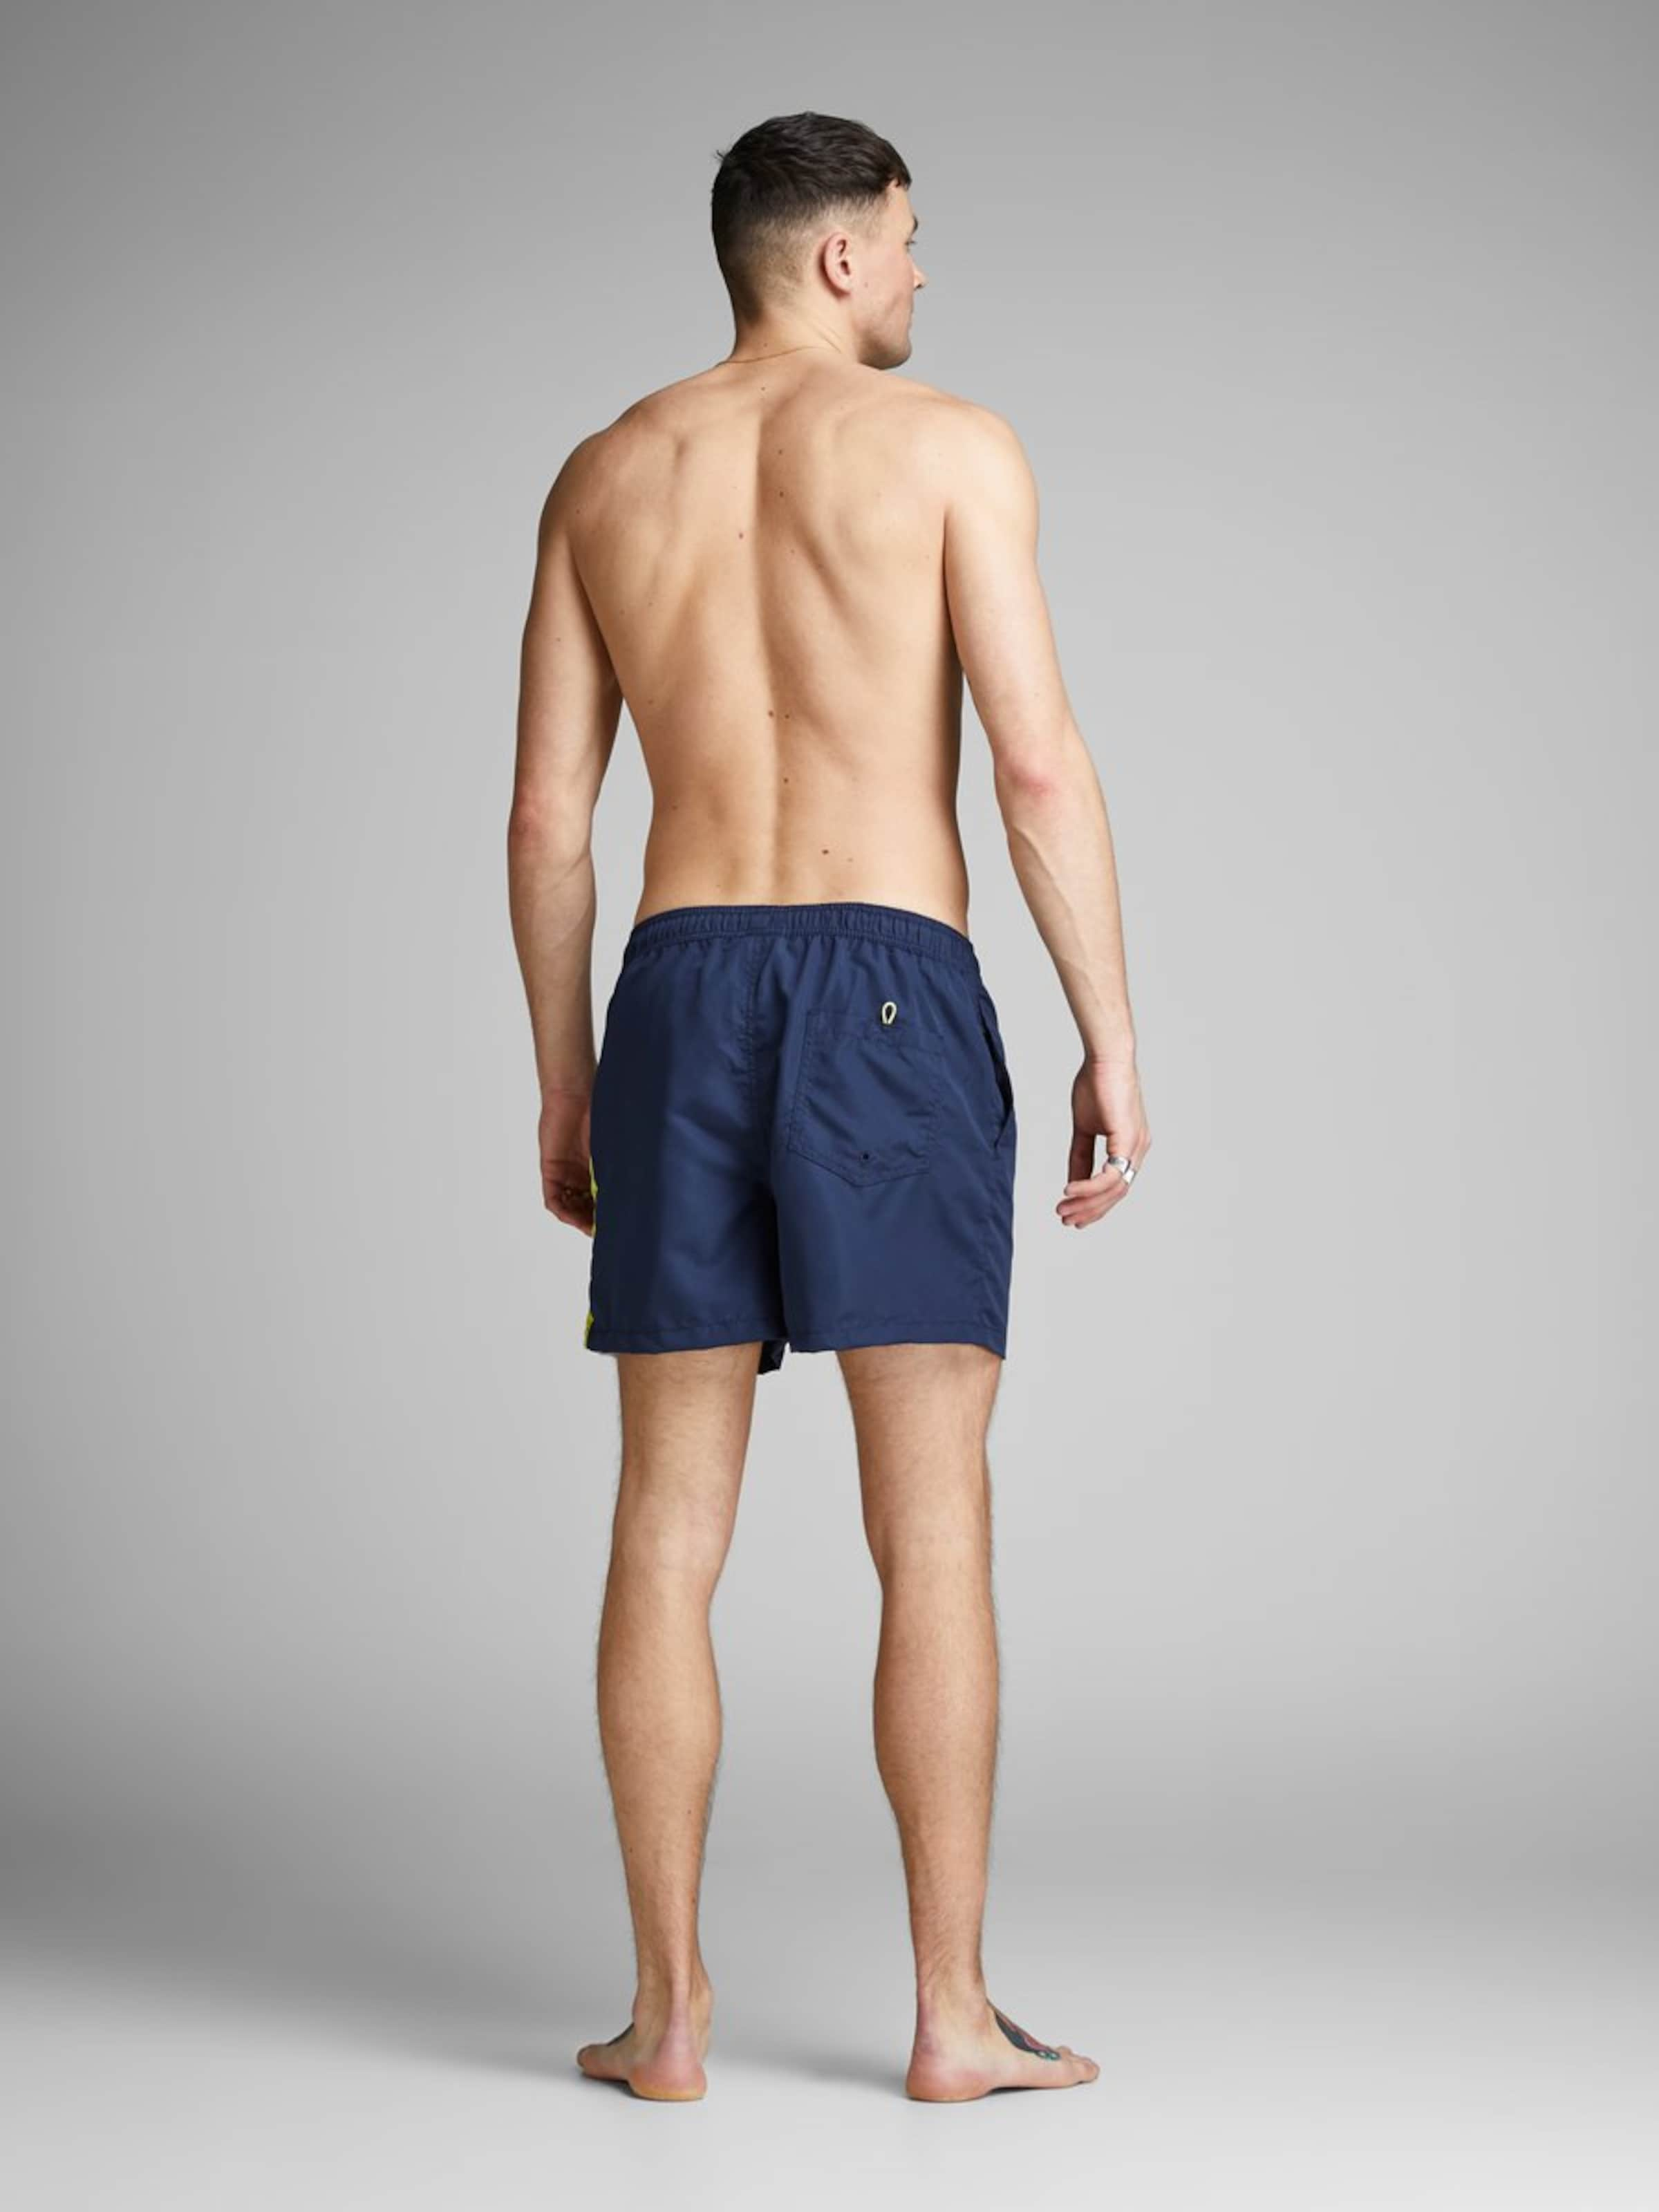 In Jones Jones Jackamp; Badeshorts In Jackamp; Jackamp; Blau Badeshorts Blau Nn0wm8